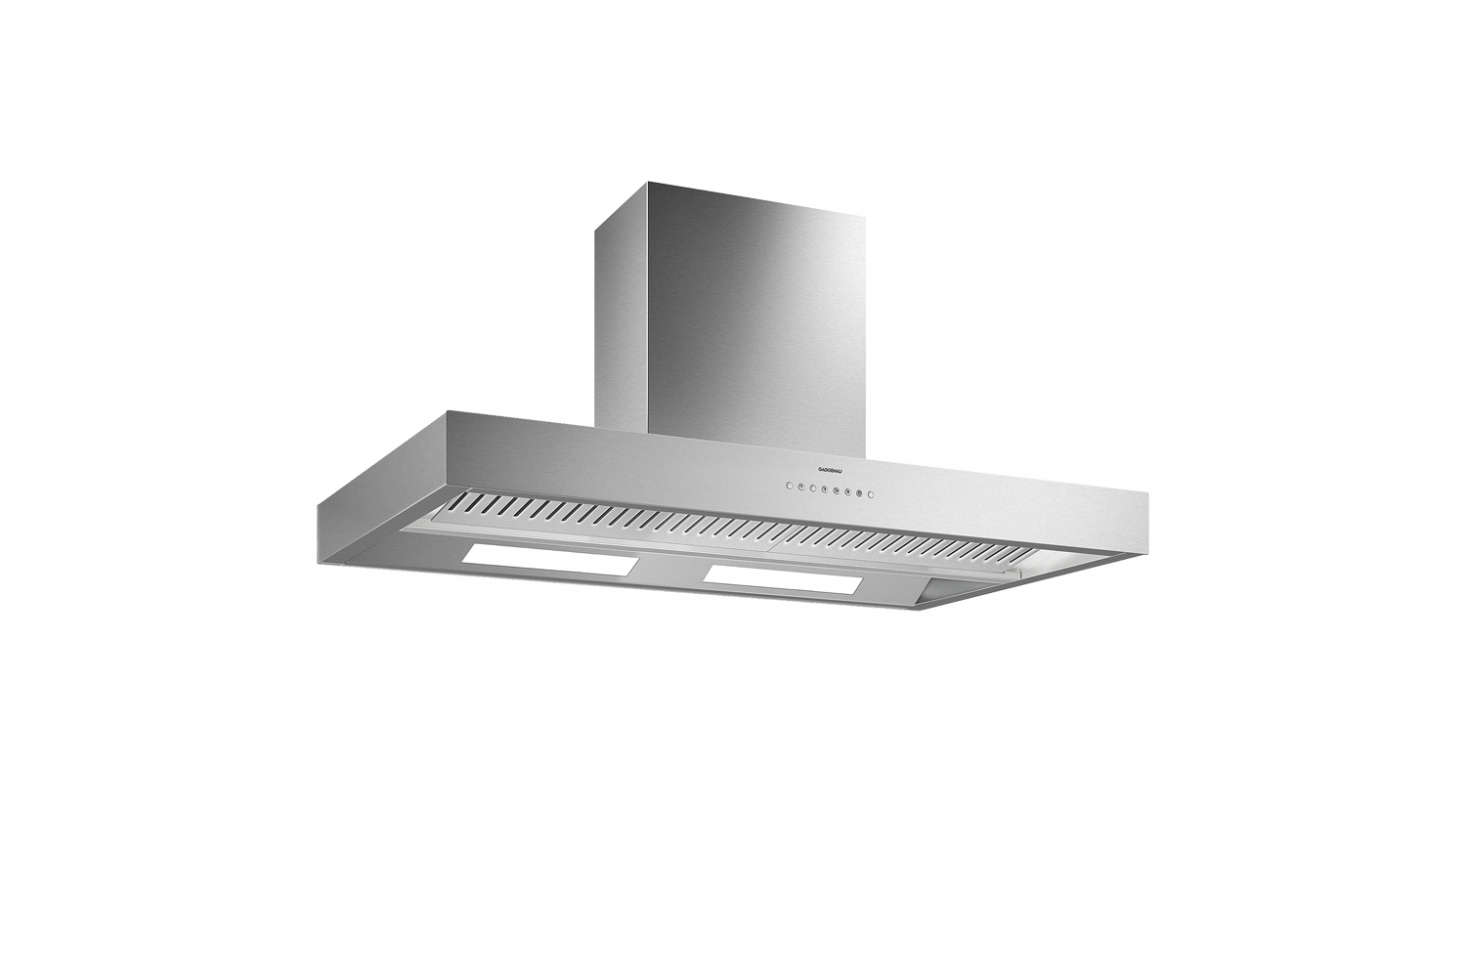 The Gaggenau 400 Series Island Hood In Stainless Steel And Measuring 47.25  Inches Is $3,599 At